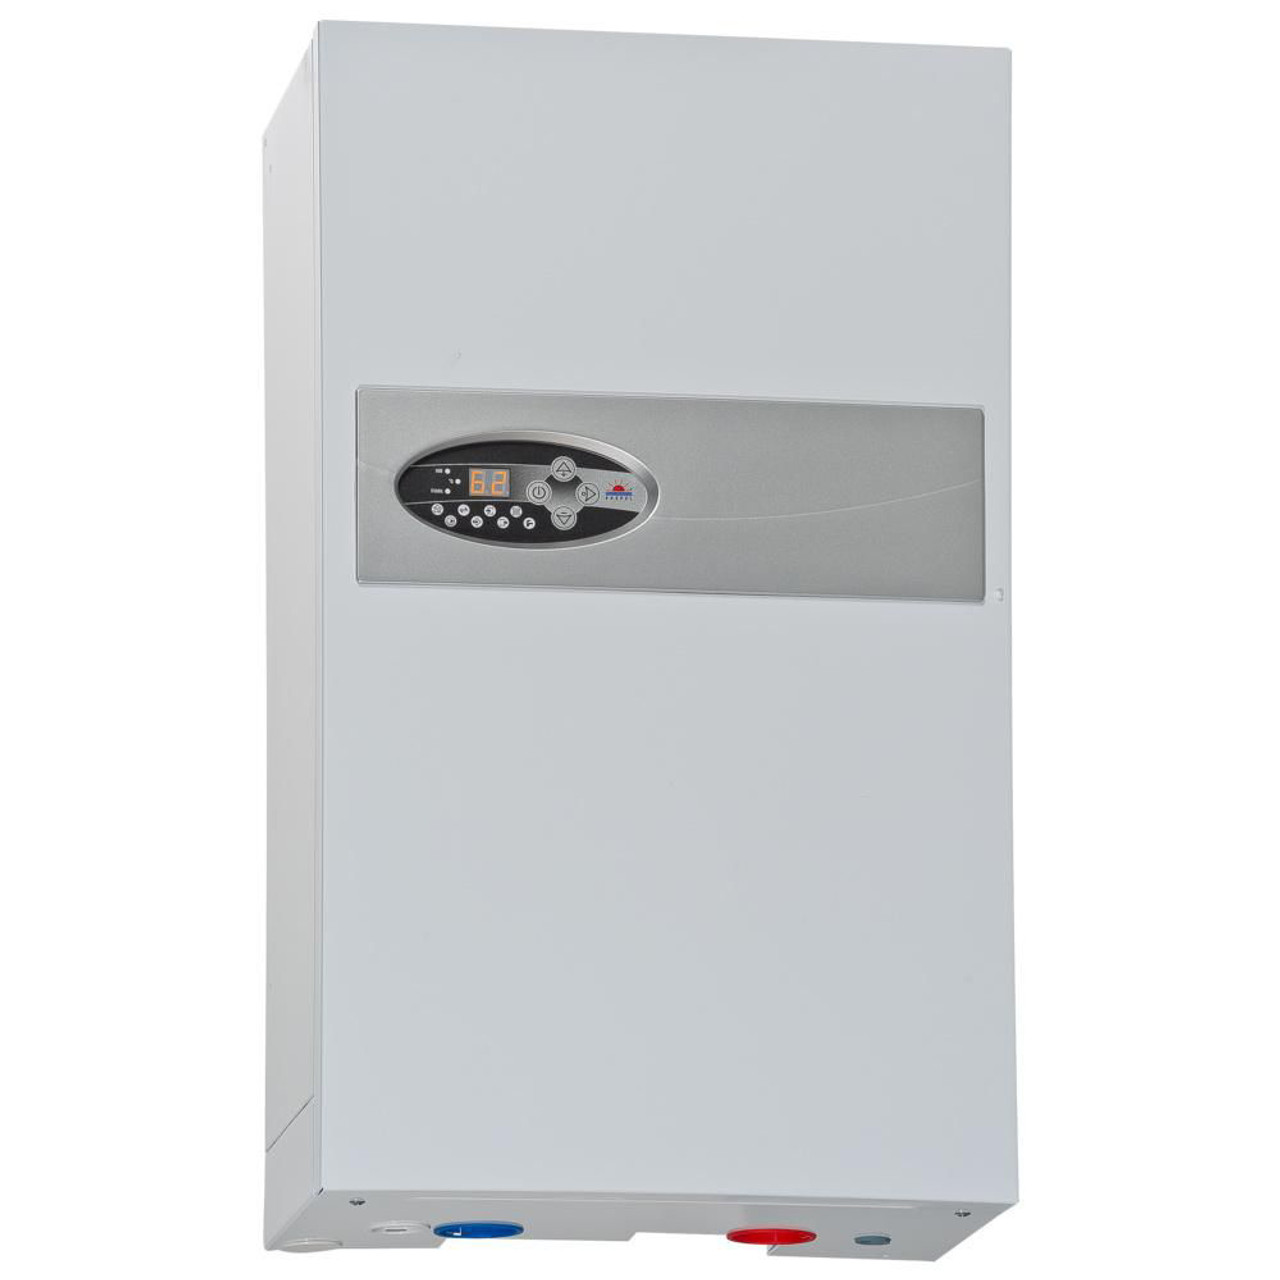 Electric Central Heating Flow Boiler Heater Installation Hot Water 15 Kw Power From Boilers